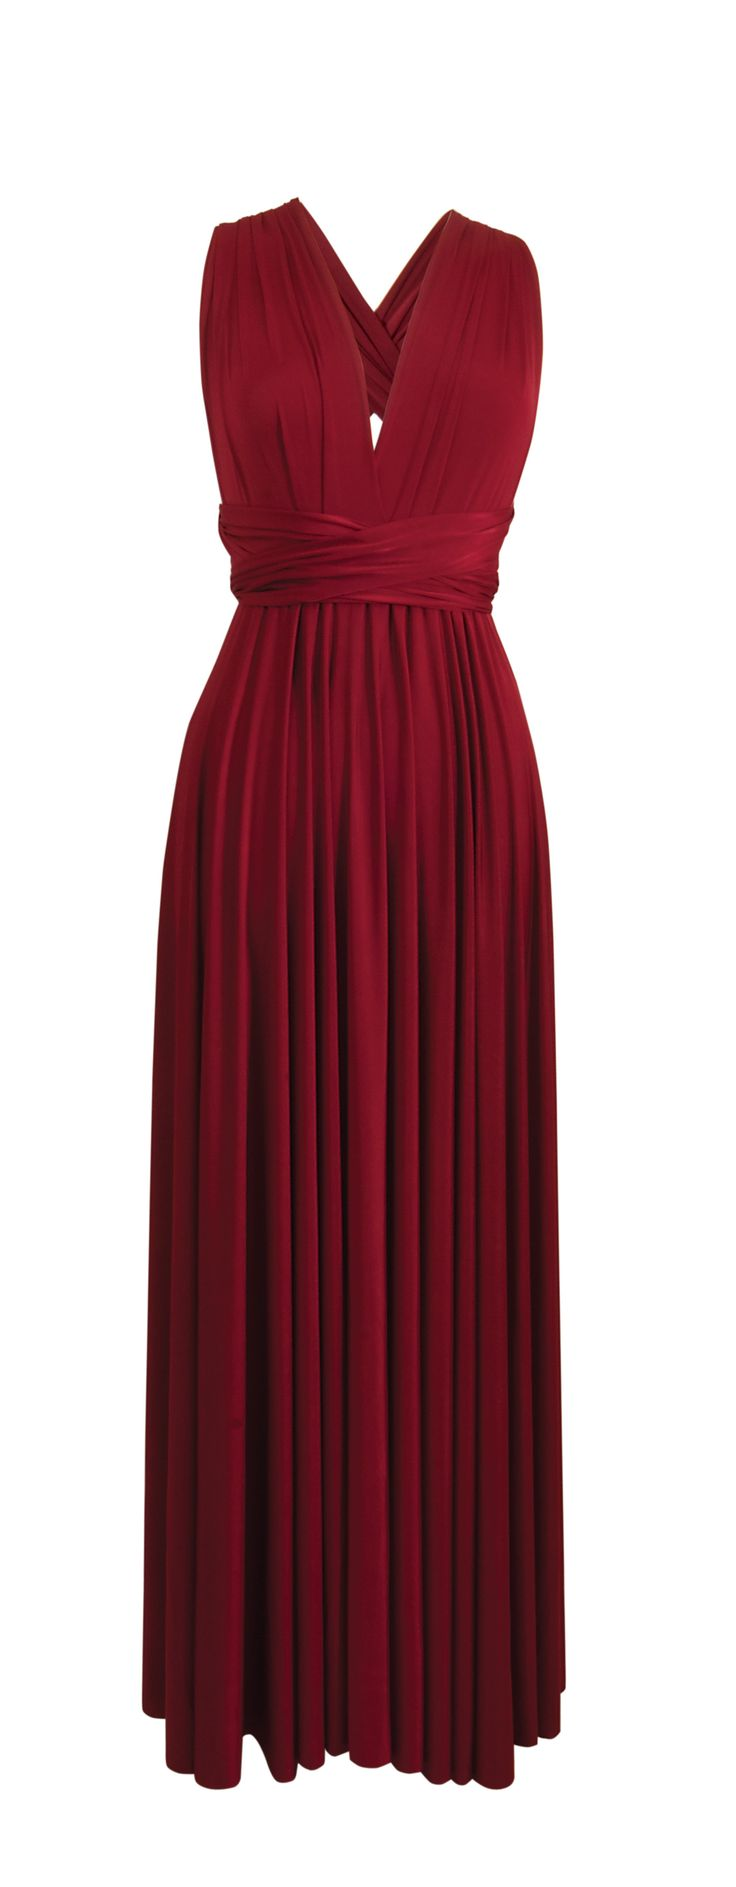 The stunning Multiway Maxi Dress in Dark Red. £159 - www.inoneclothing.com